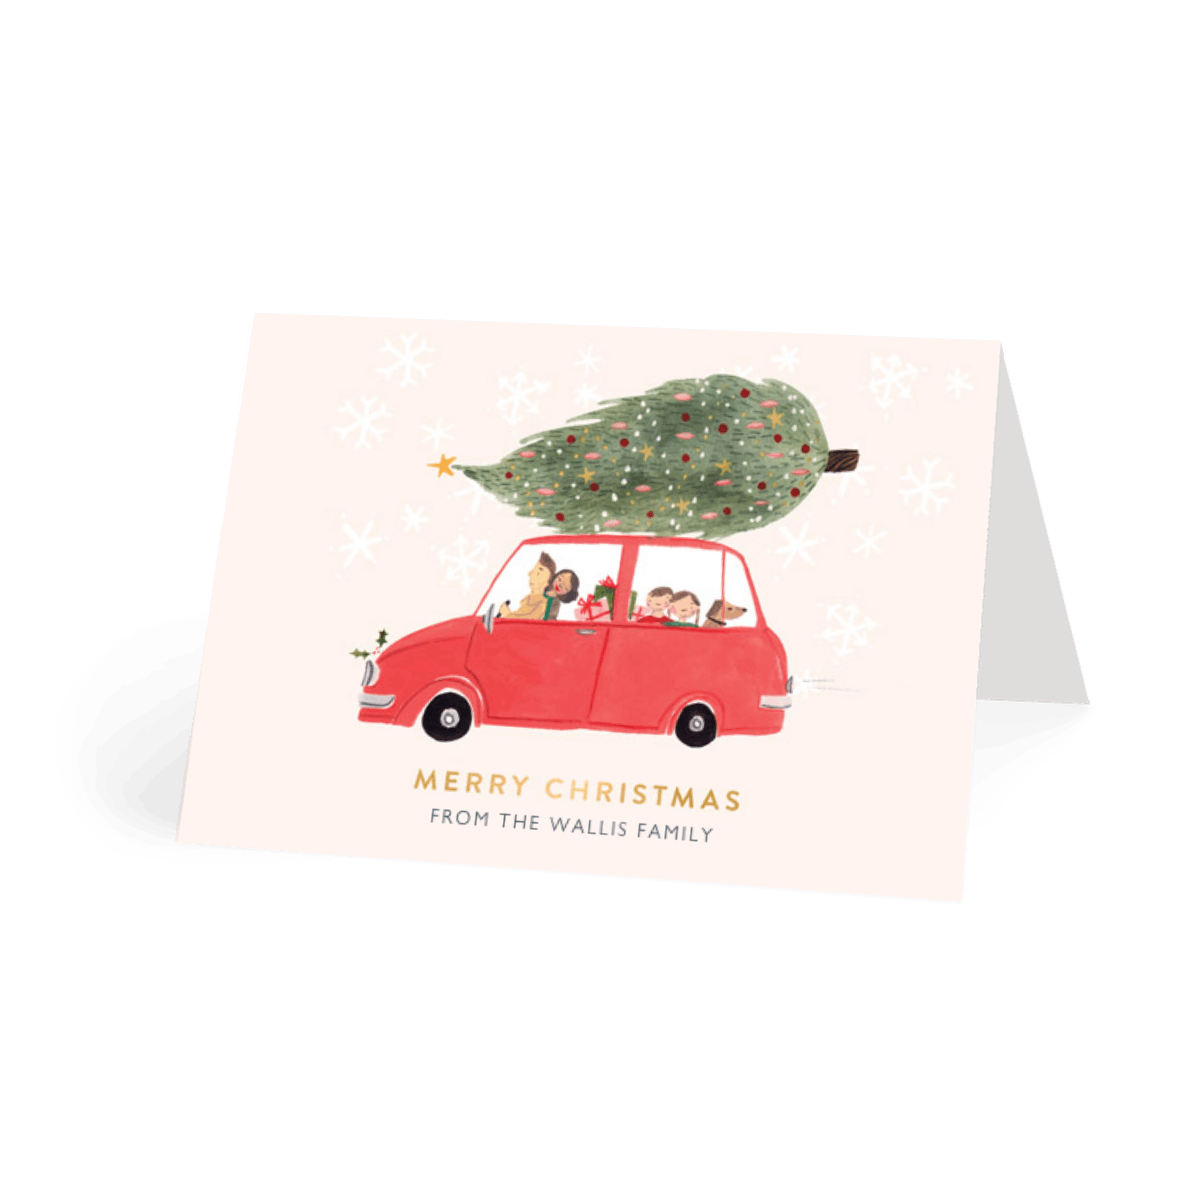 Https%3a%2f%2fwww.papier.com%2fproduct image%2f91120%2f14%2fdriving home for christmas 22782 front 1571412369.png?ixlib=rb 1.1